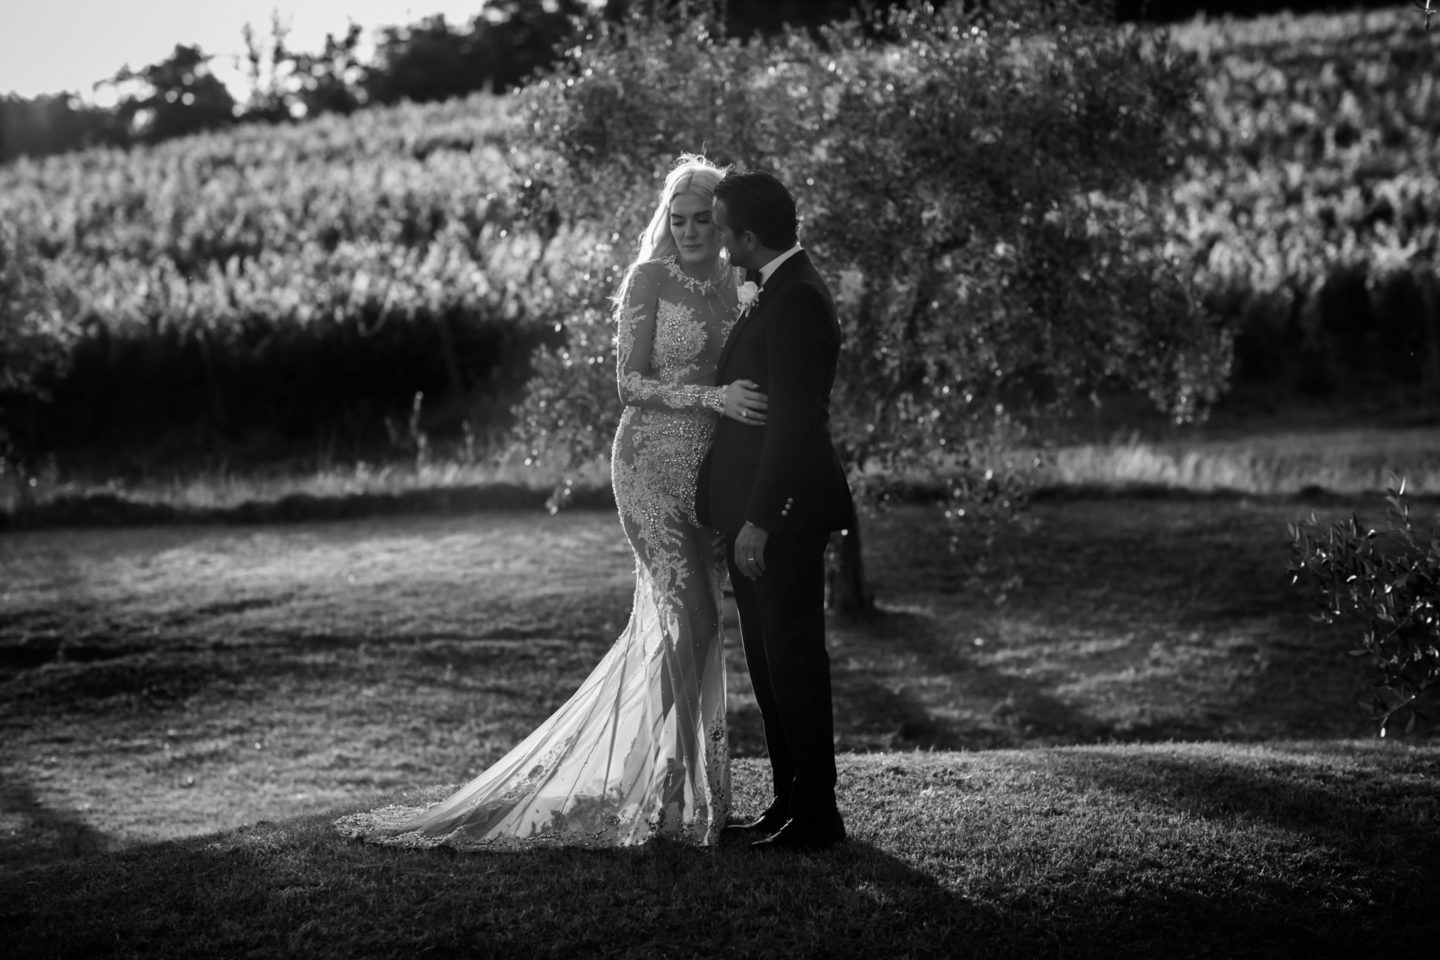 Intimate Moment :: Exciting wedding in the countryside of Siena :: Luxury wedding photography - 45 :: Intimate Moment